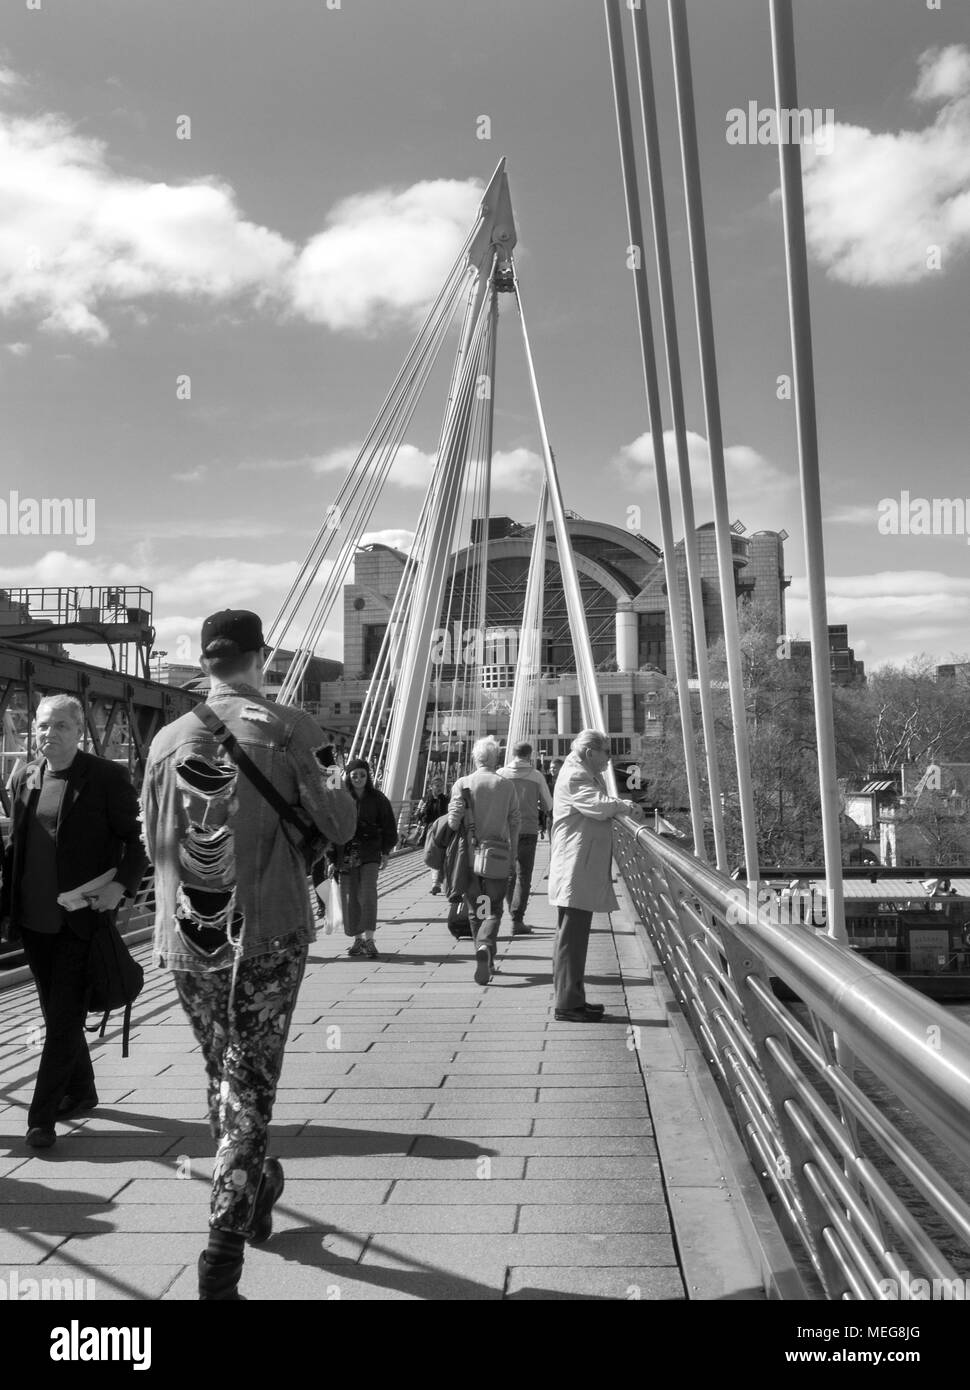 London england april 17th 2018 a black and white photograph of tourists walking